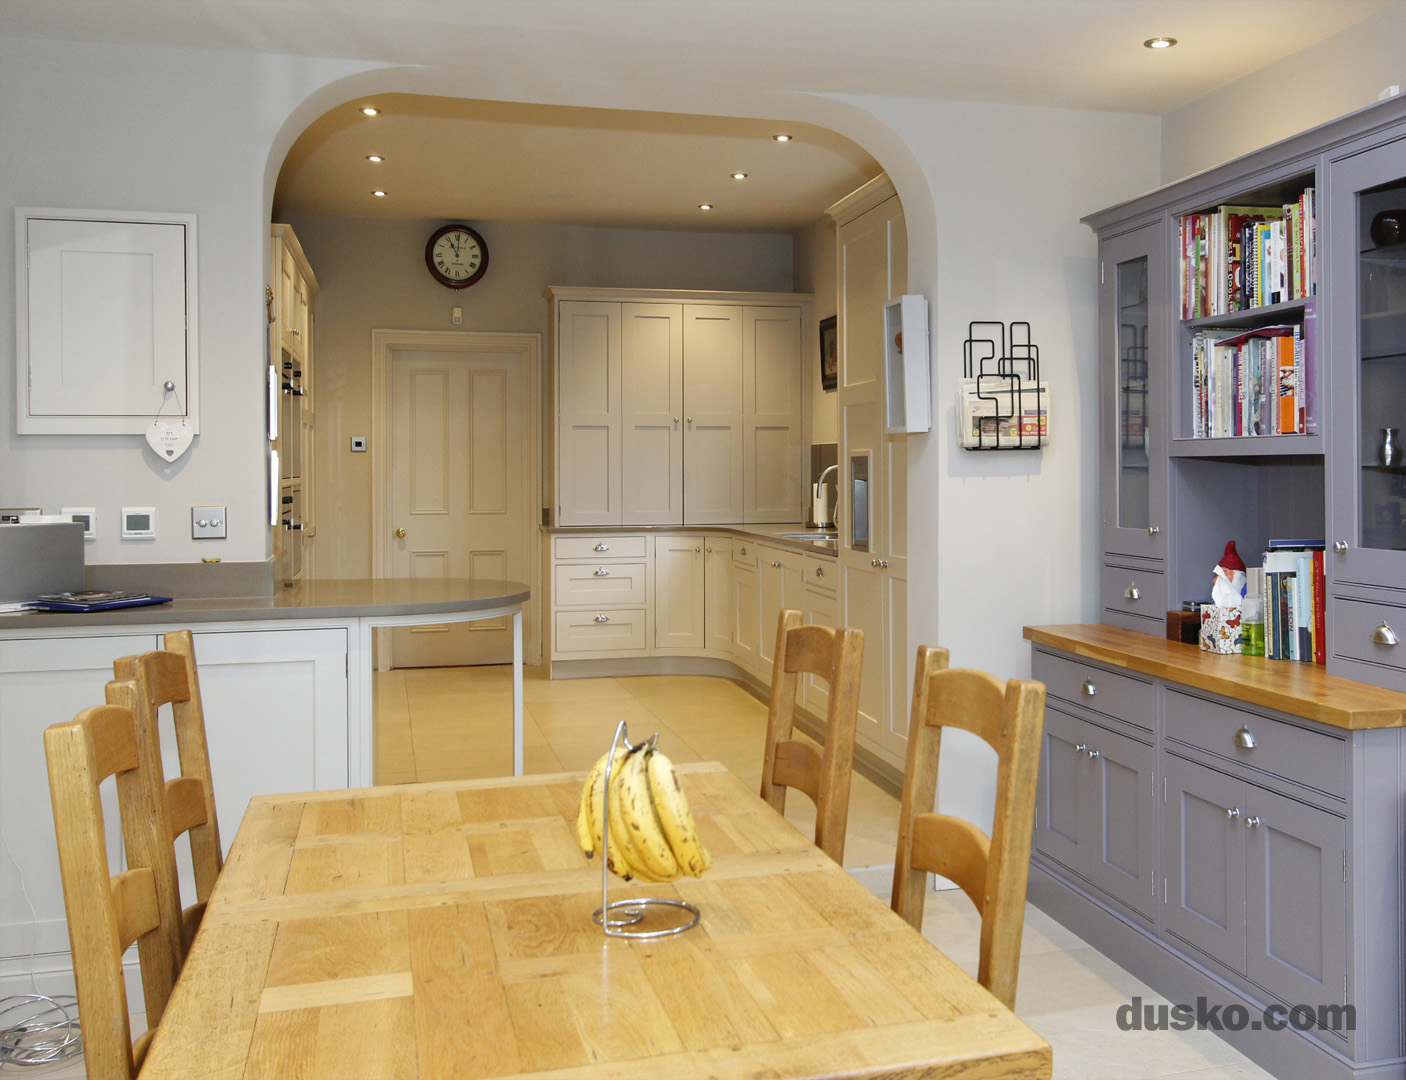 In Frame Kitchen in Bowdon, Cheshire Dining Area